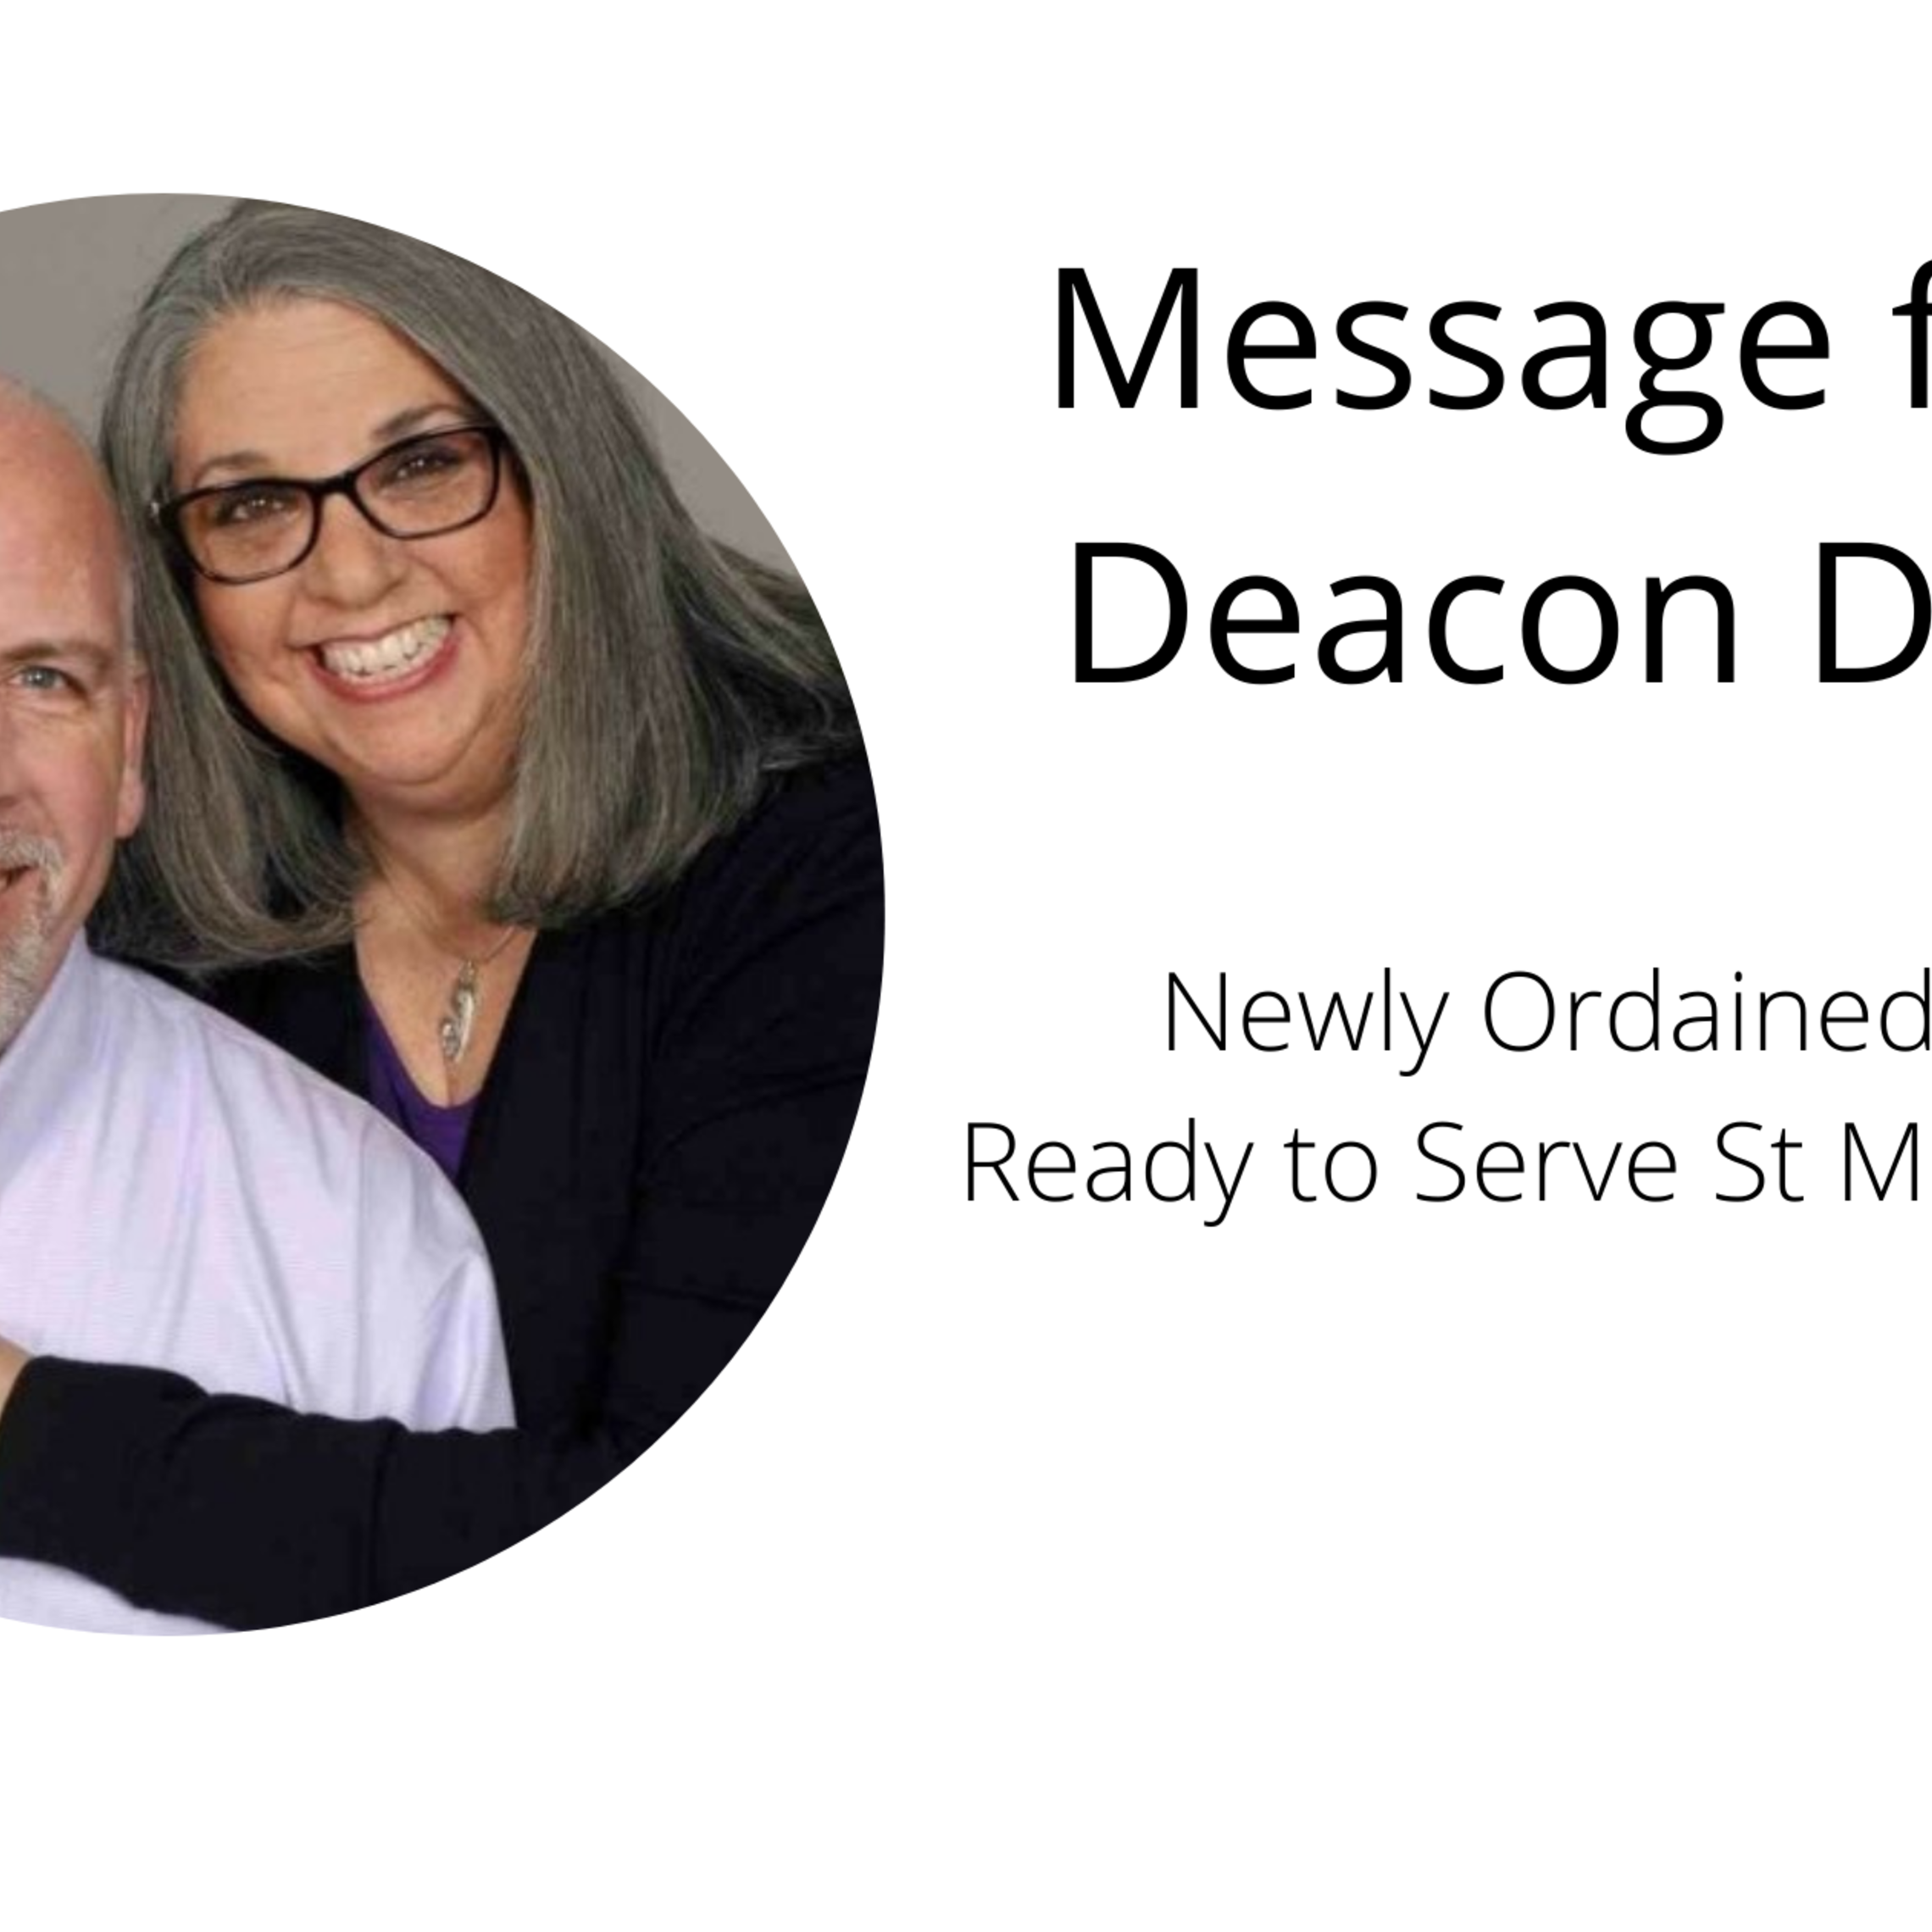 Message From Deacon David